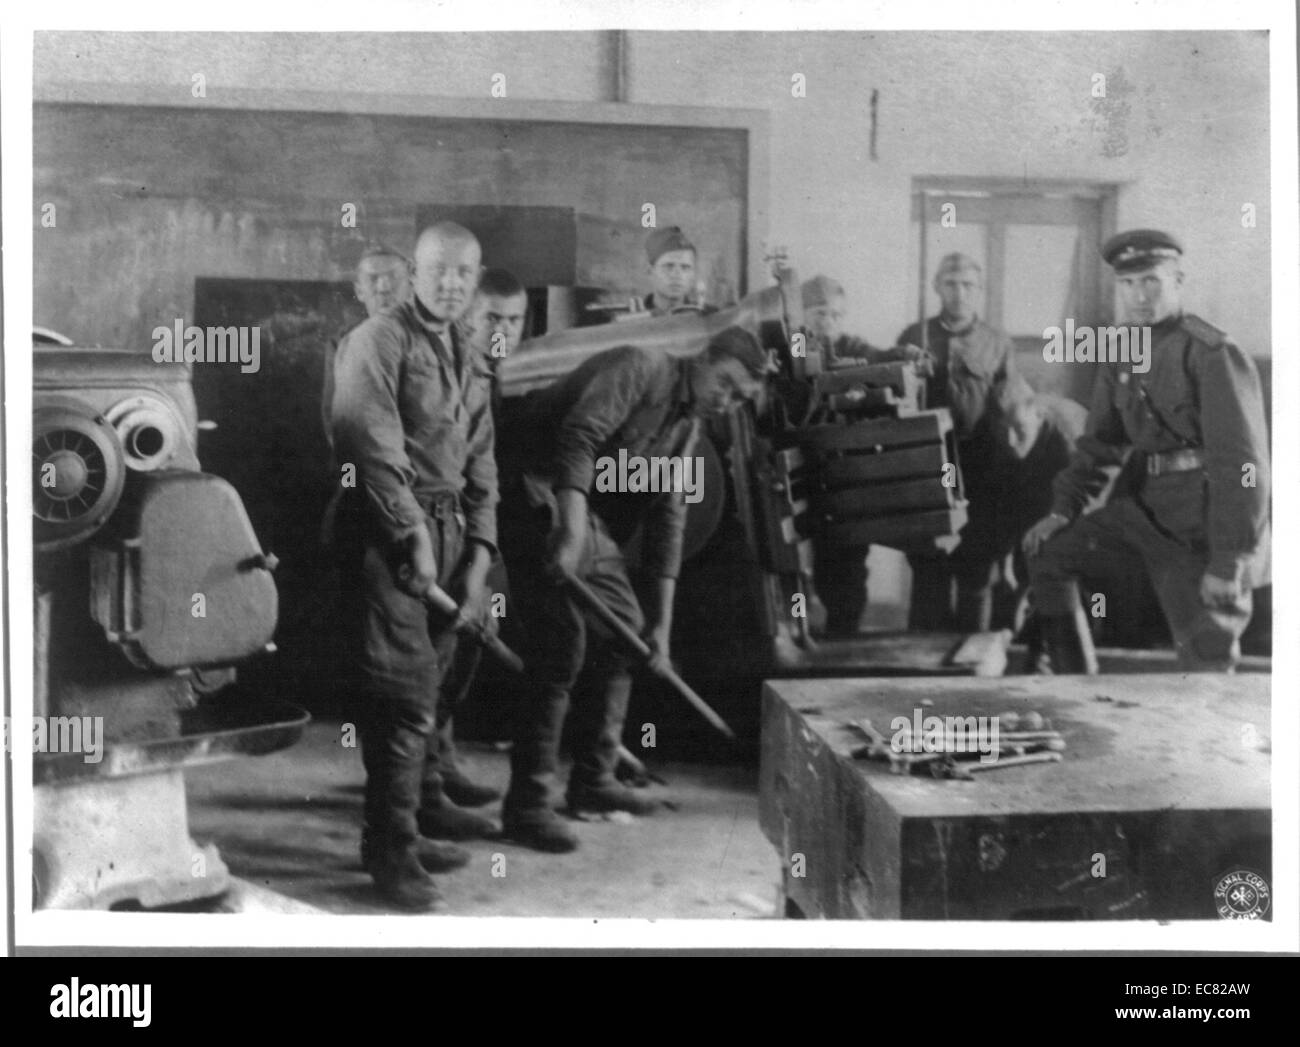 Soviet soldiers in process of removing industrial equipment from Manchurian factories, during the second world war - Stock Image